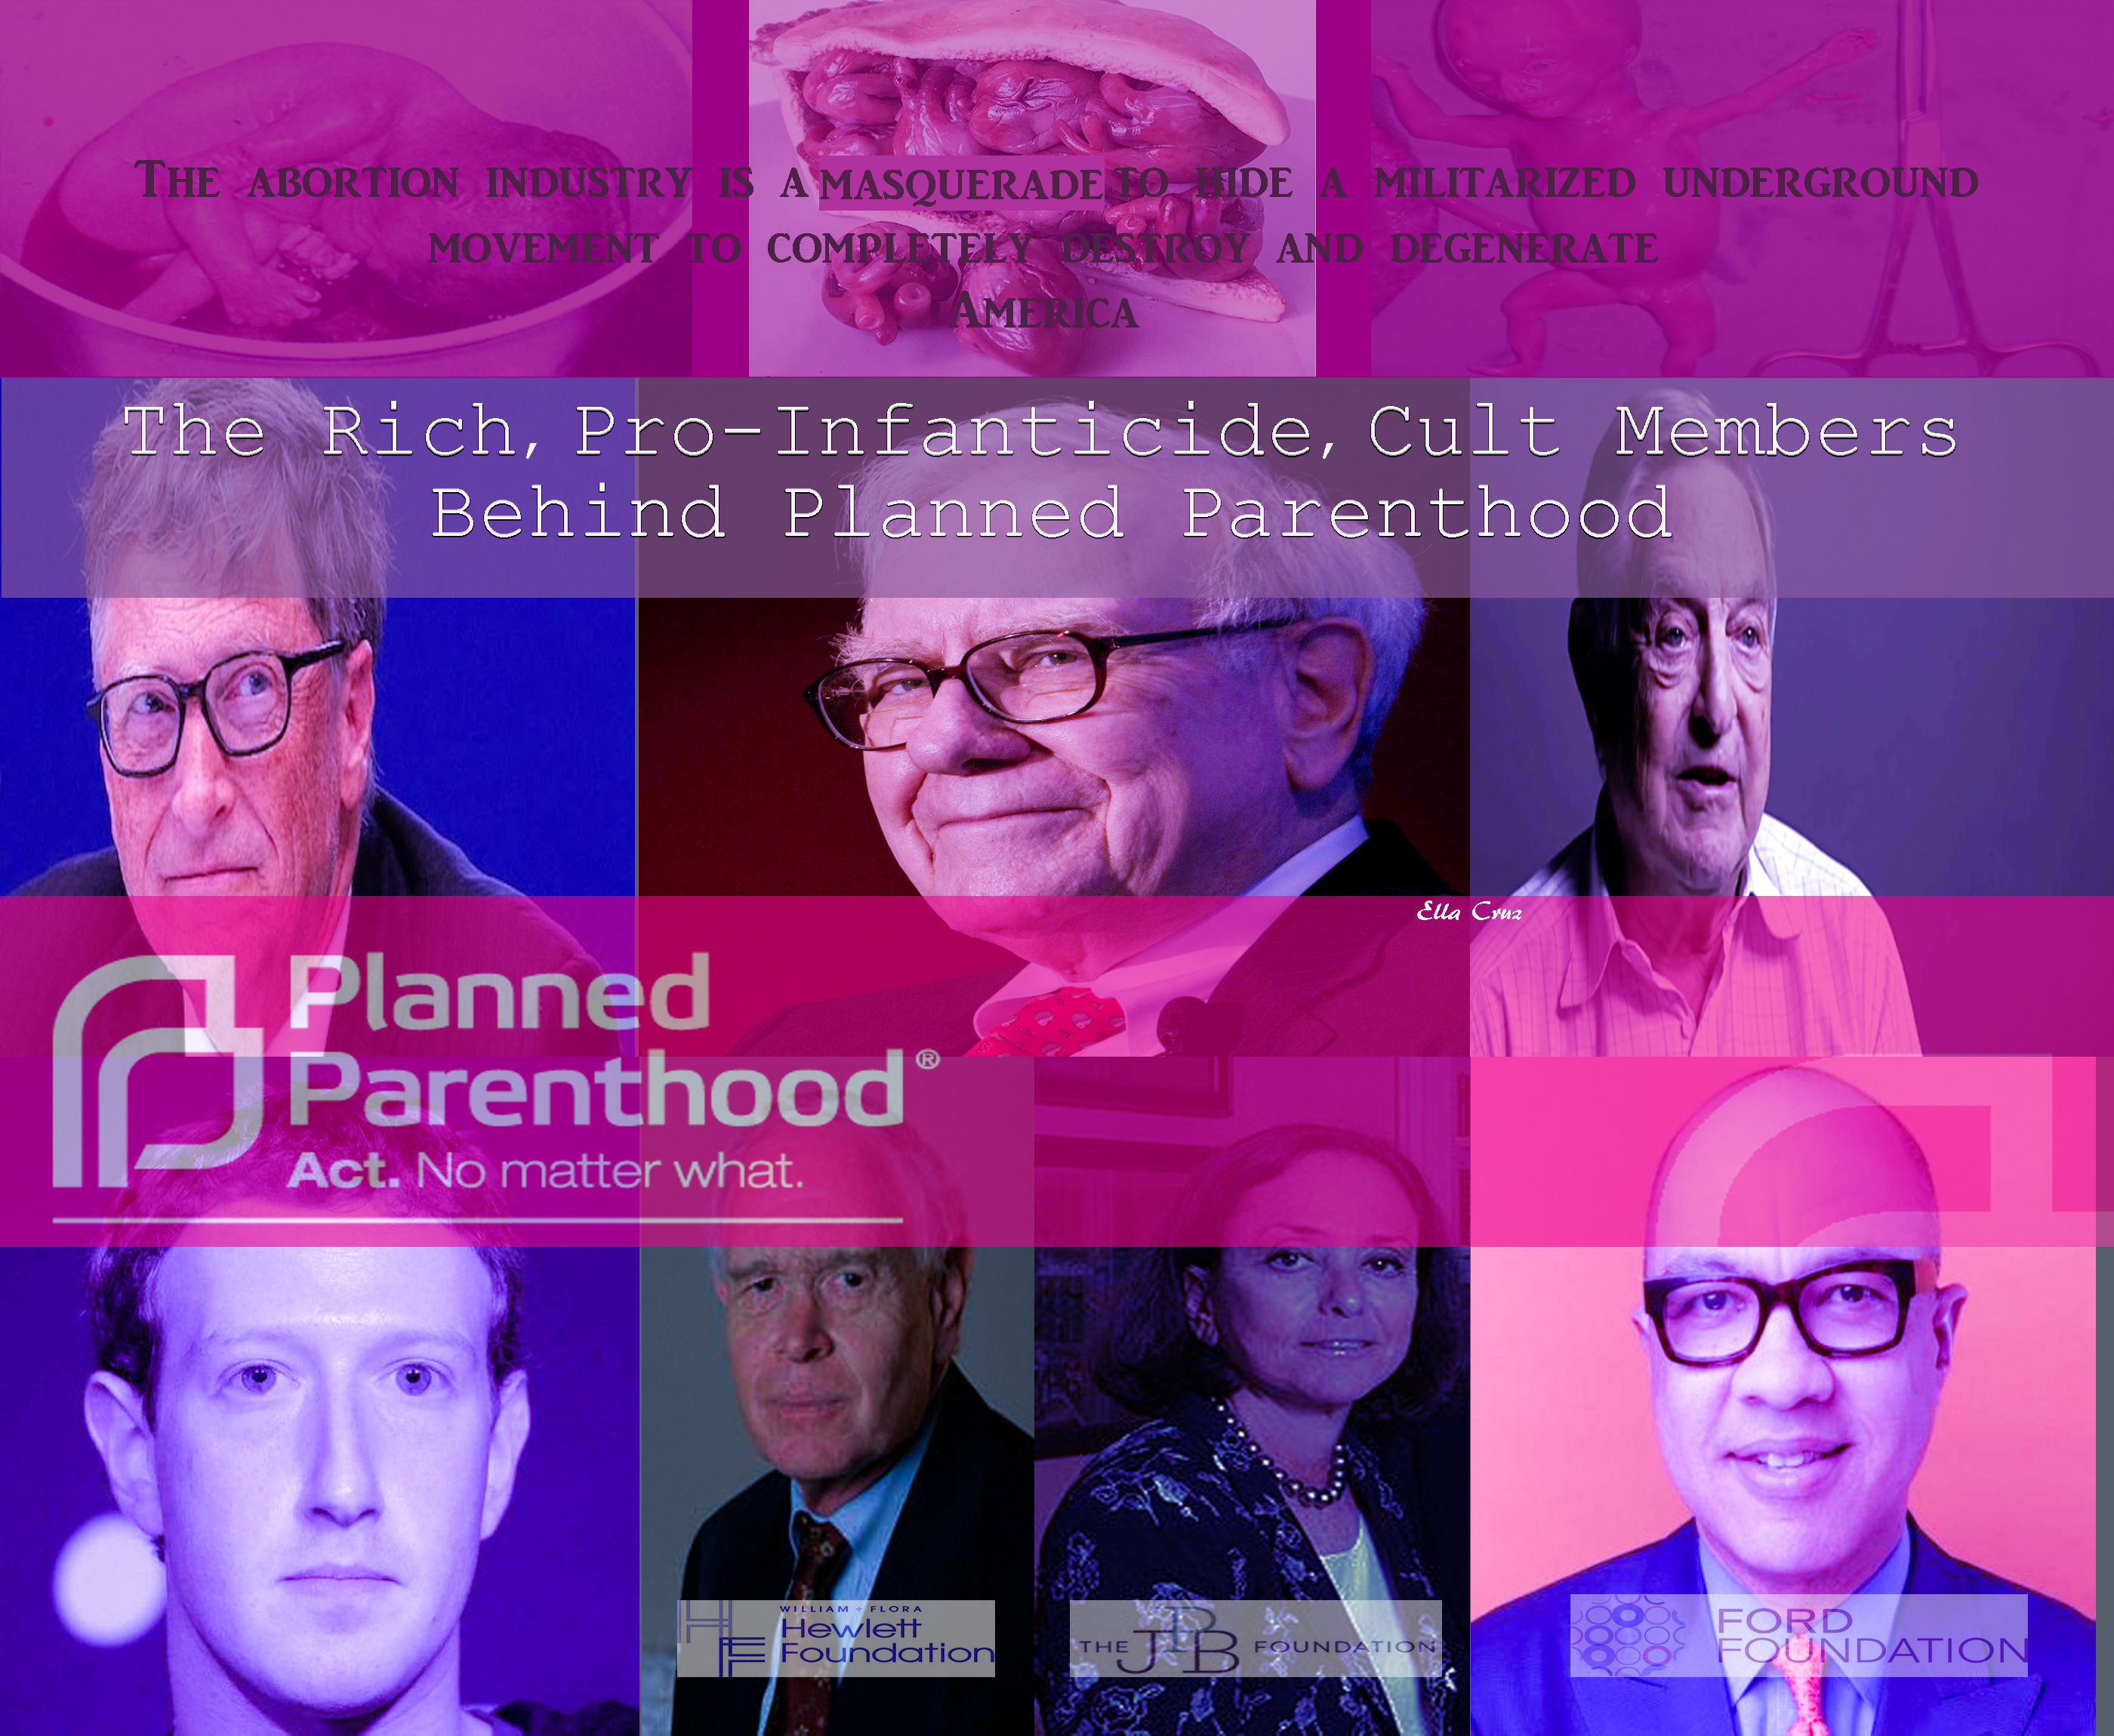 Planned Parenthood Promotes Underage Sex (which is called pedophilia), Harvests babies' Hearts, Invites 14-Year-Old School Kids to Watch Porn & Have BDSM Sex With Whips & Clamps & Pain & Blood,  And helps the Pimp to Use His 14-Year Old Prostitudes After Abortion